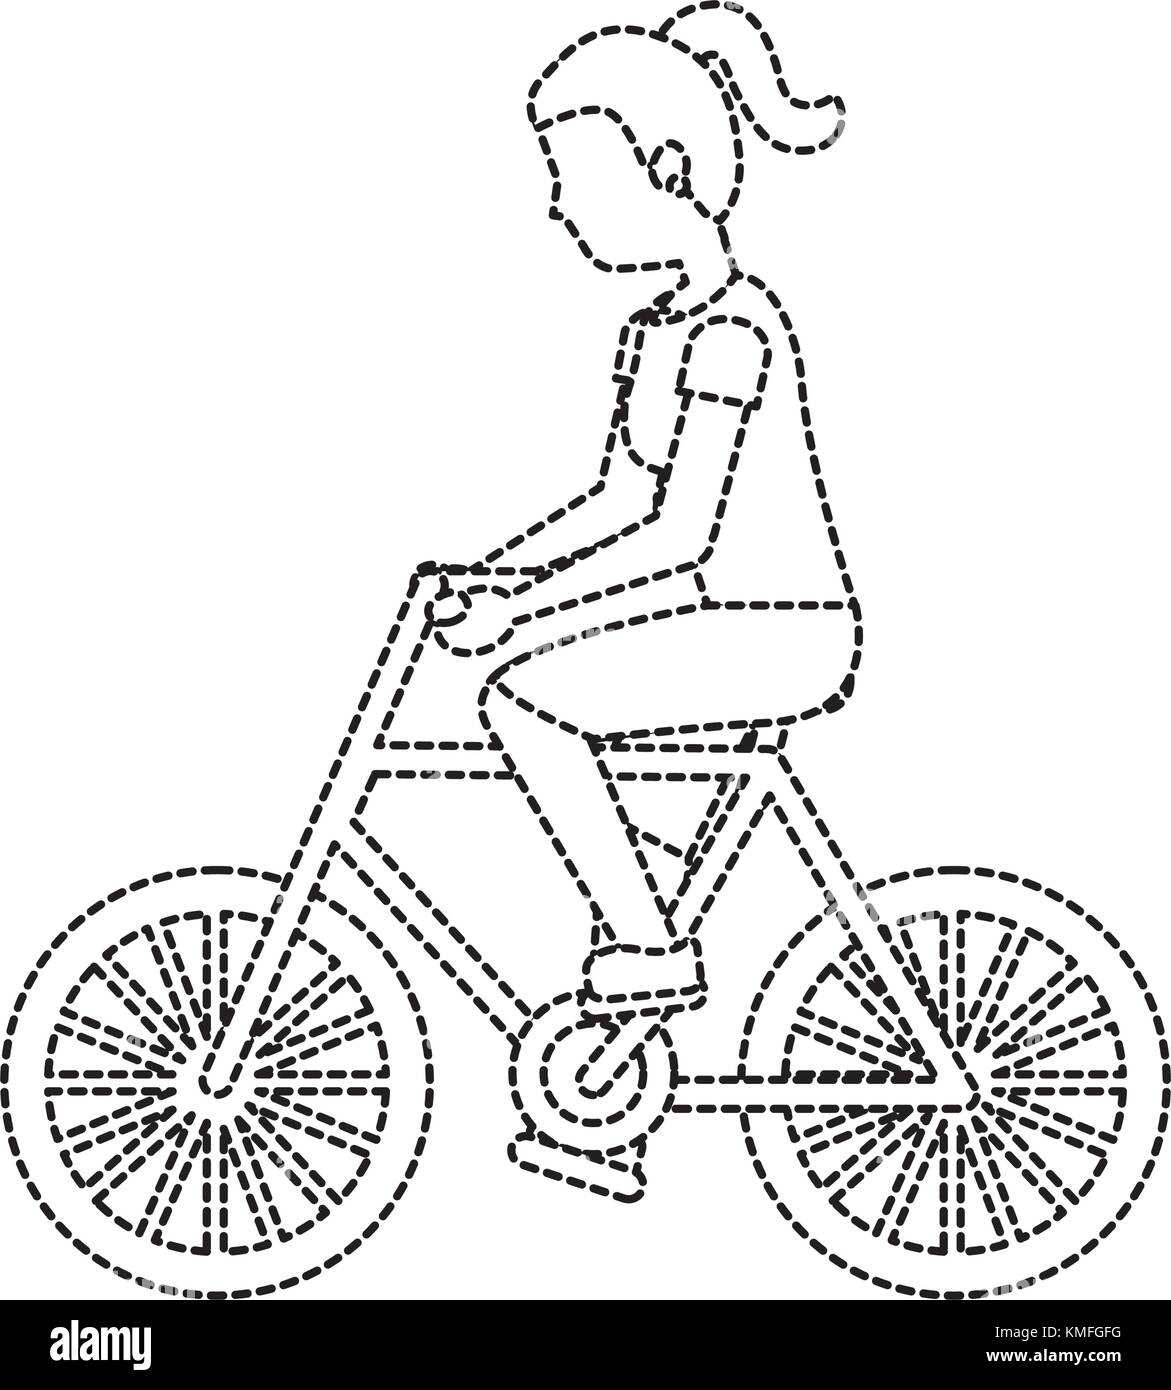 woman with bike black and white stock photos images alamy Springs Chopper Grease Frame with 1970s Dampemed woman riding bike icon image stock image